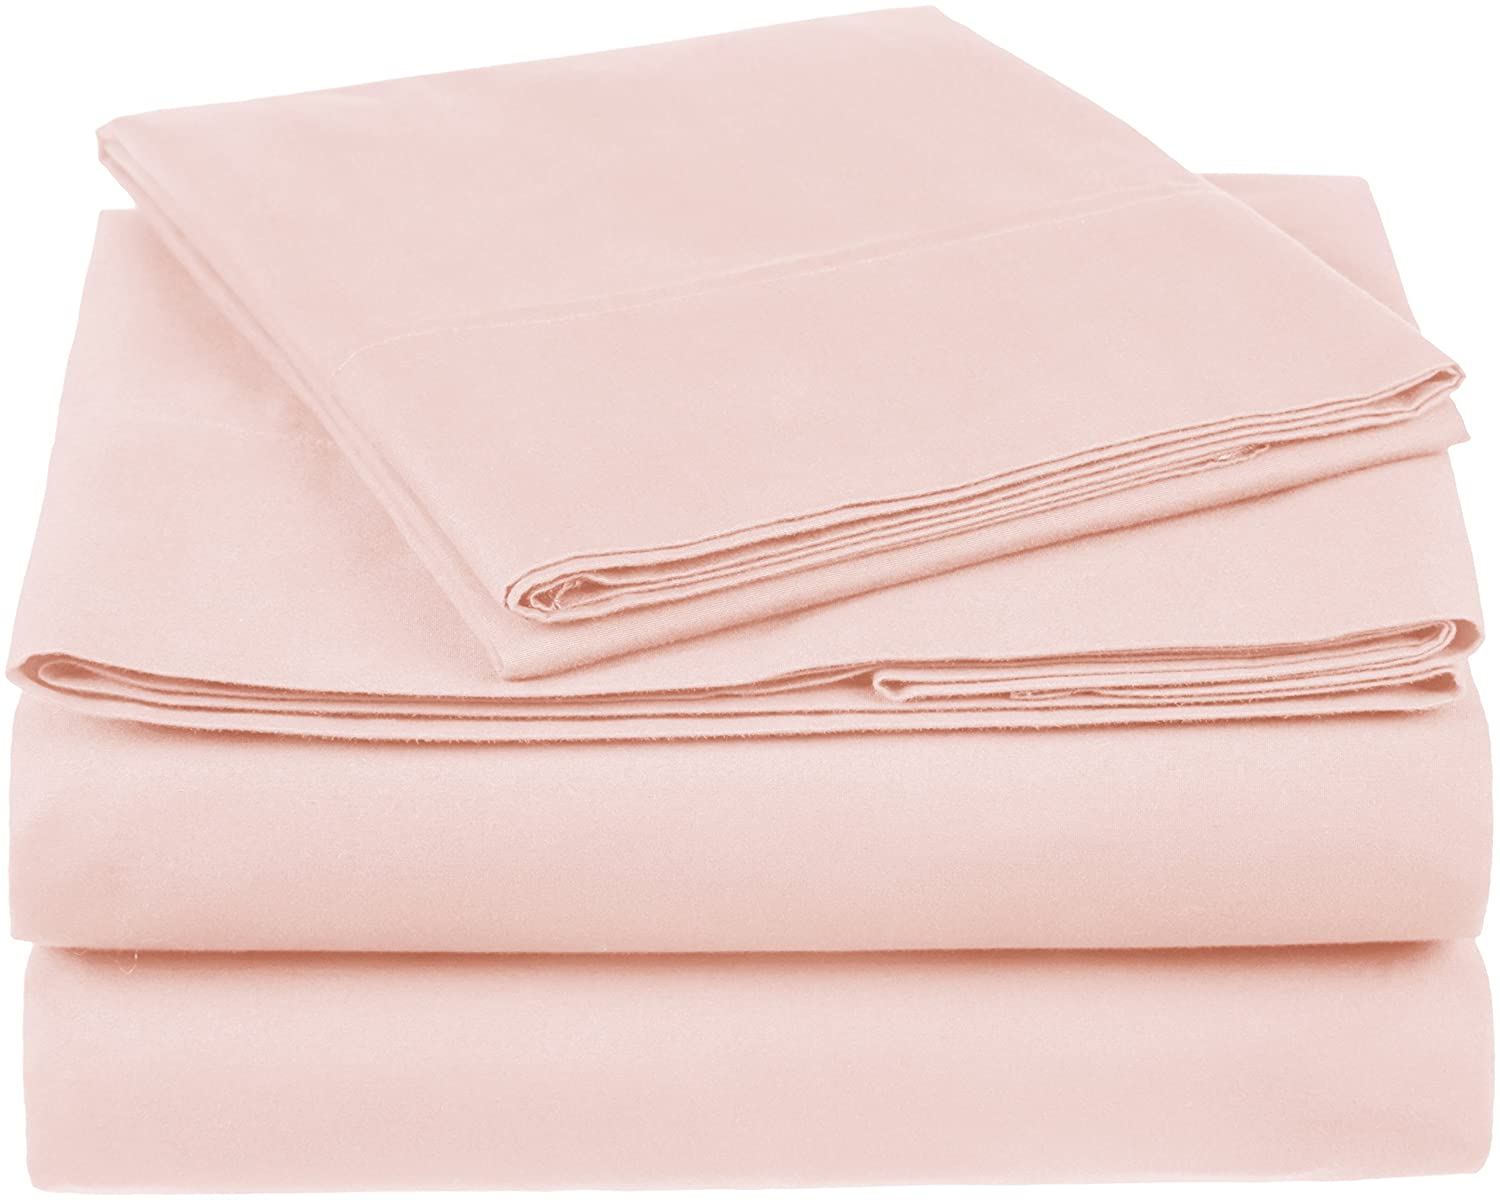 Pinzon by Amazon Sheet Set, Twin, Blush